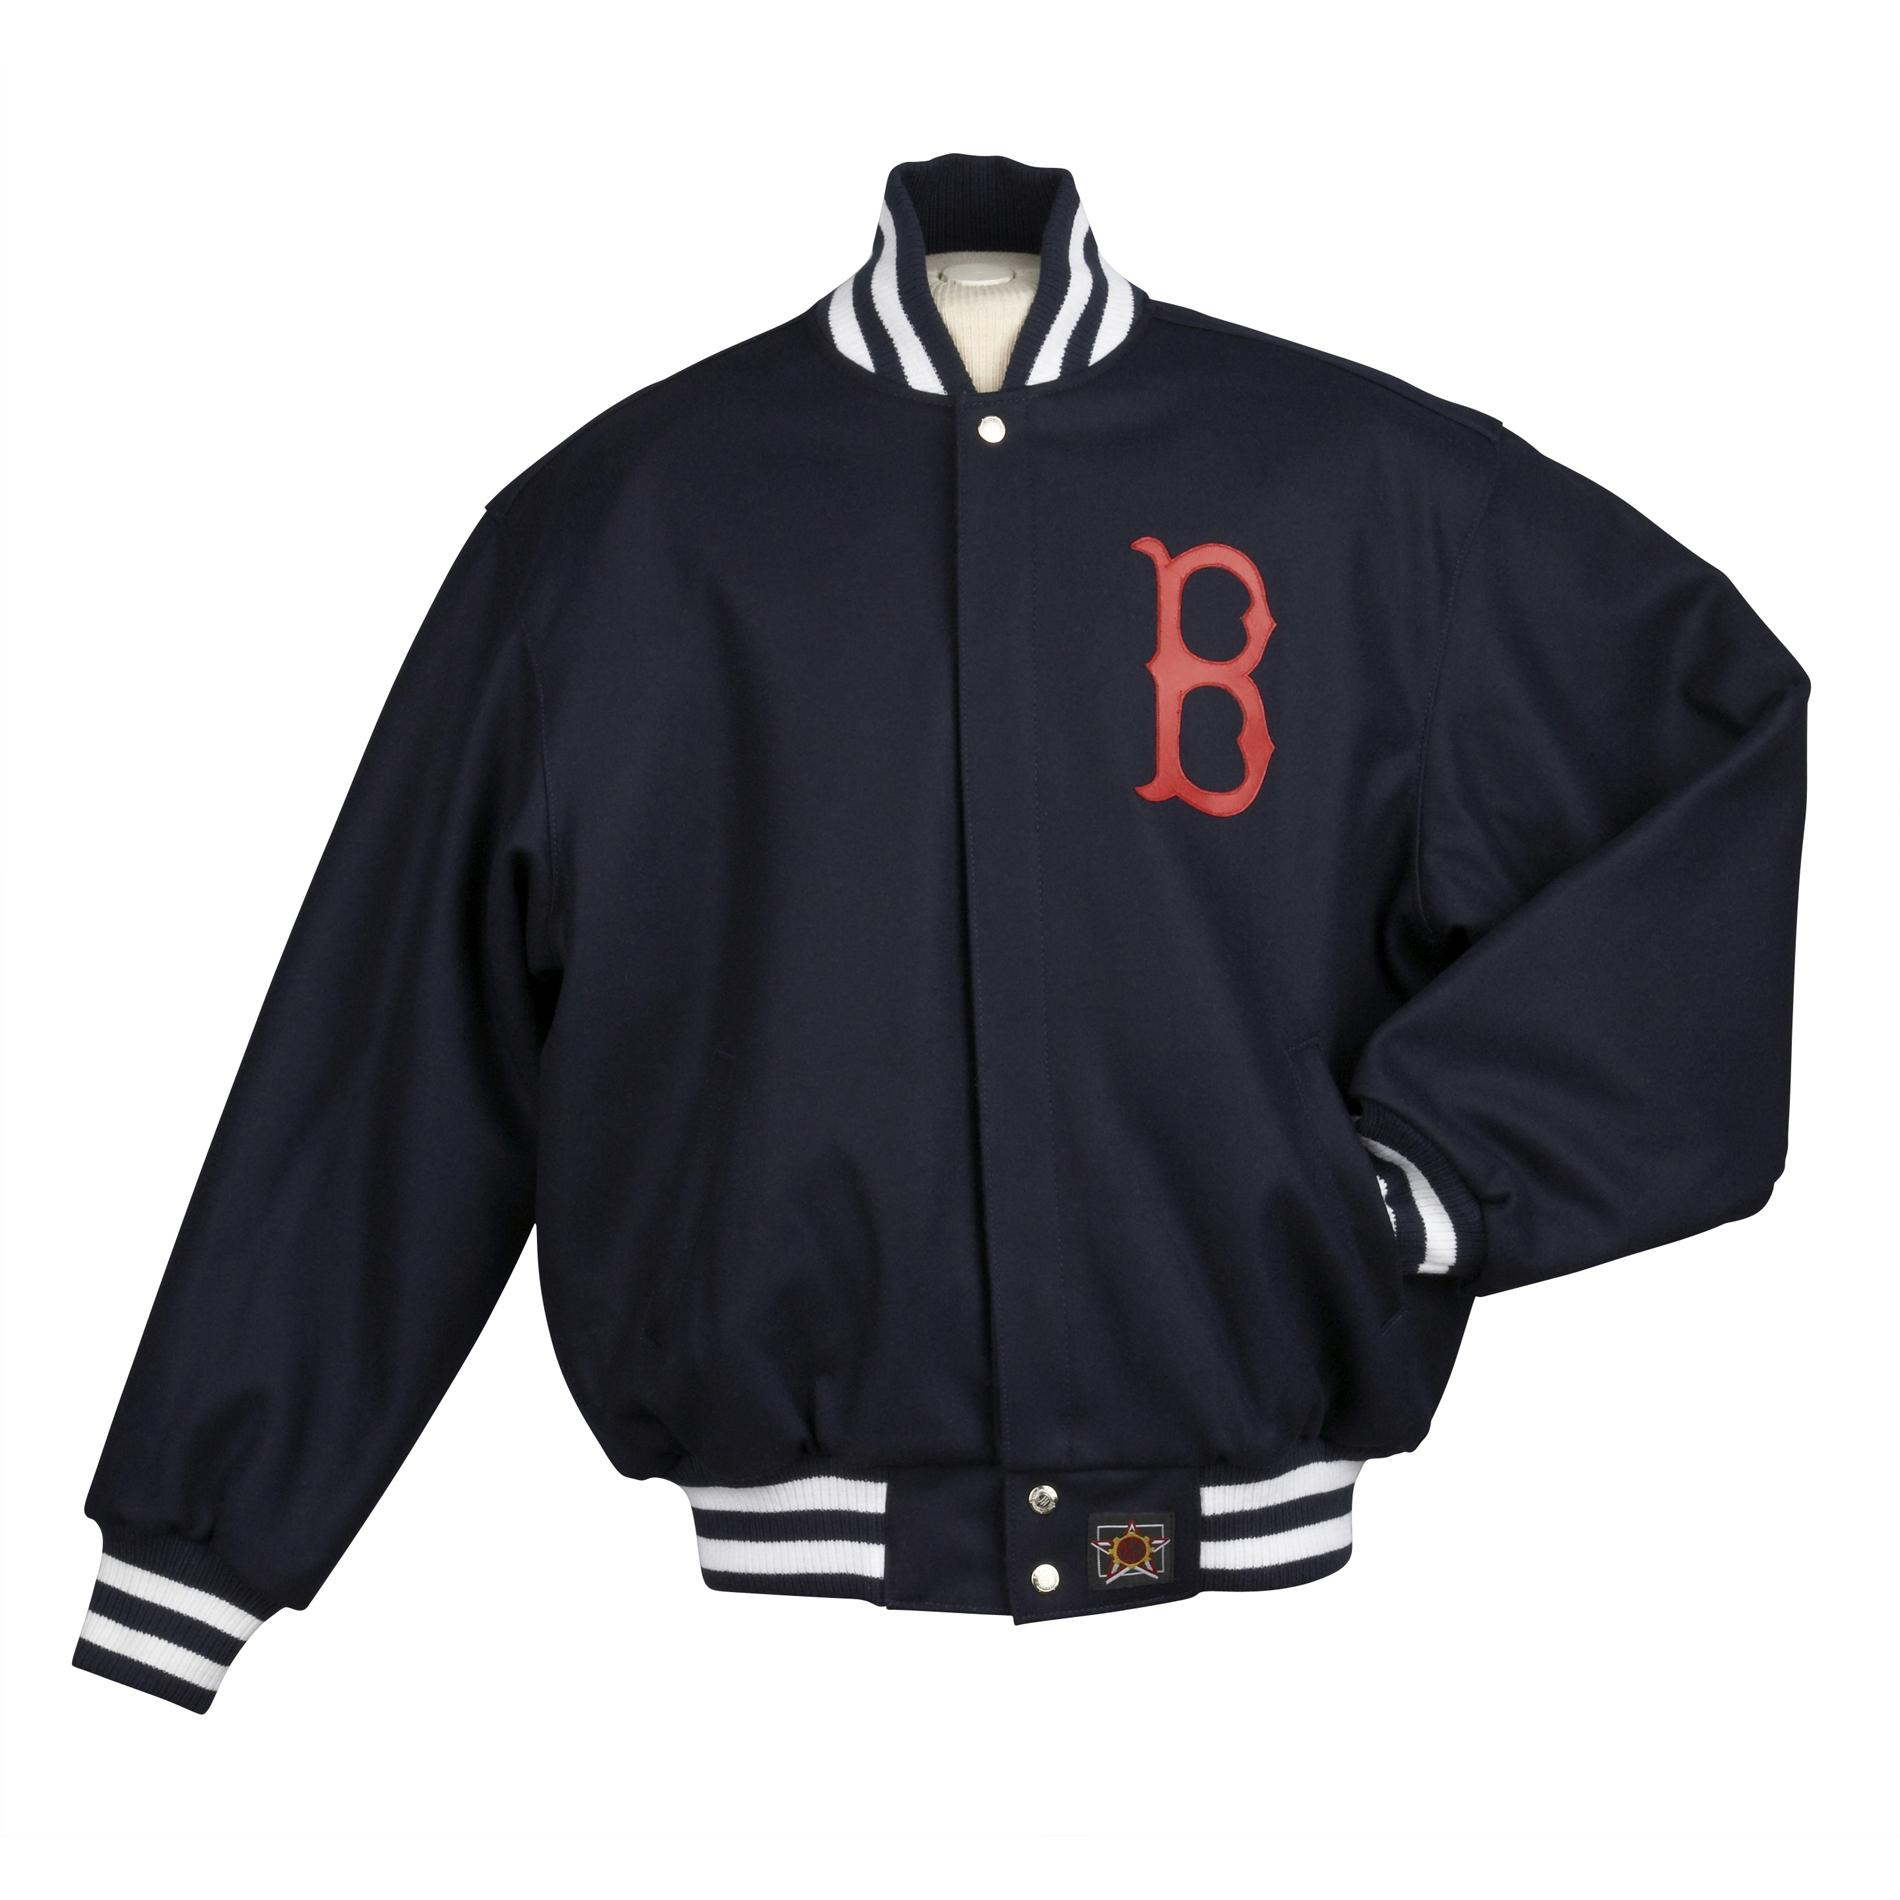 JH Designs Men's Boston Red Sox Domestic Wool Jacket